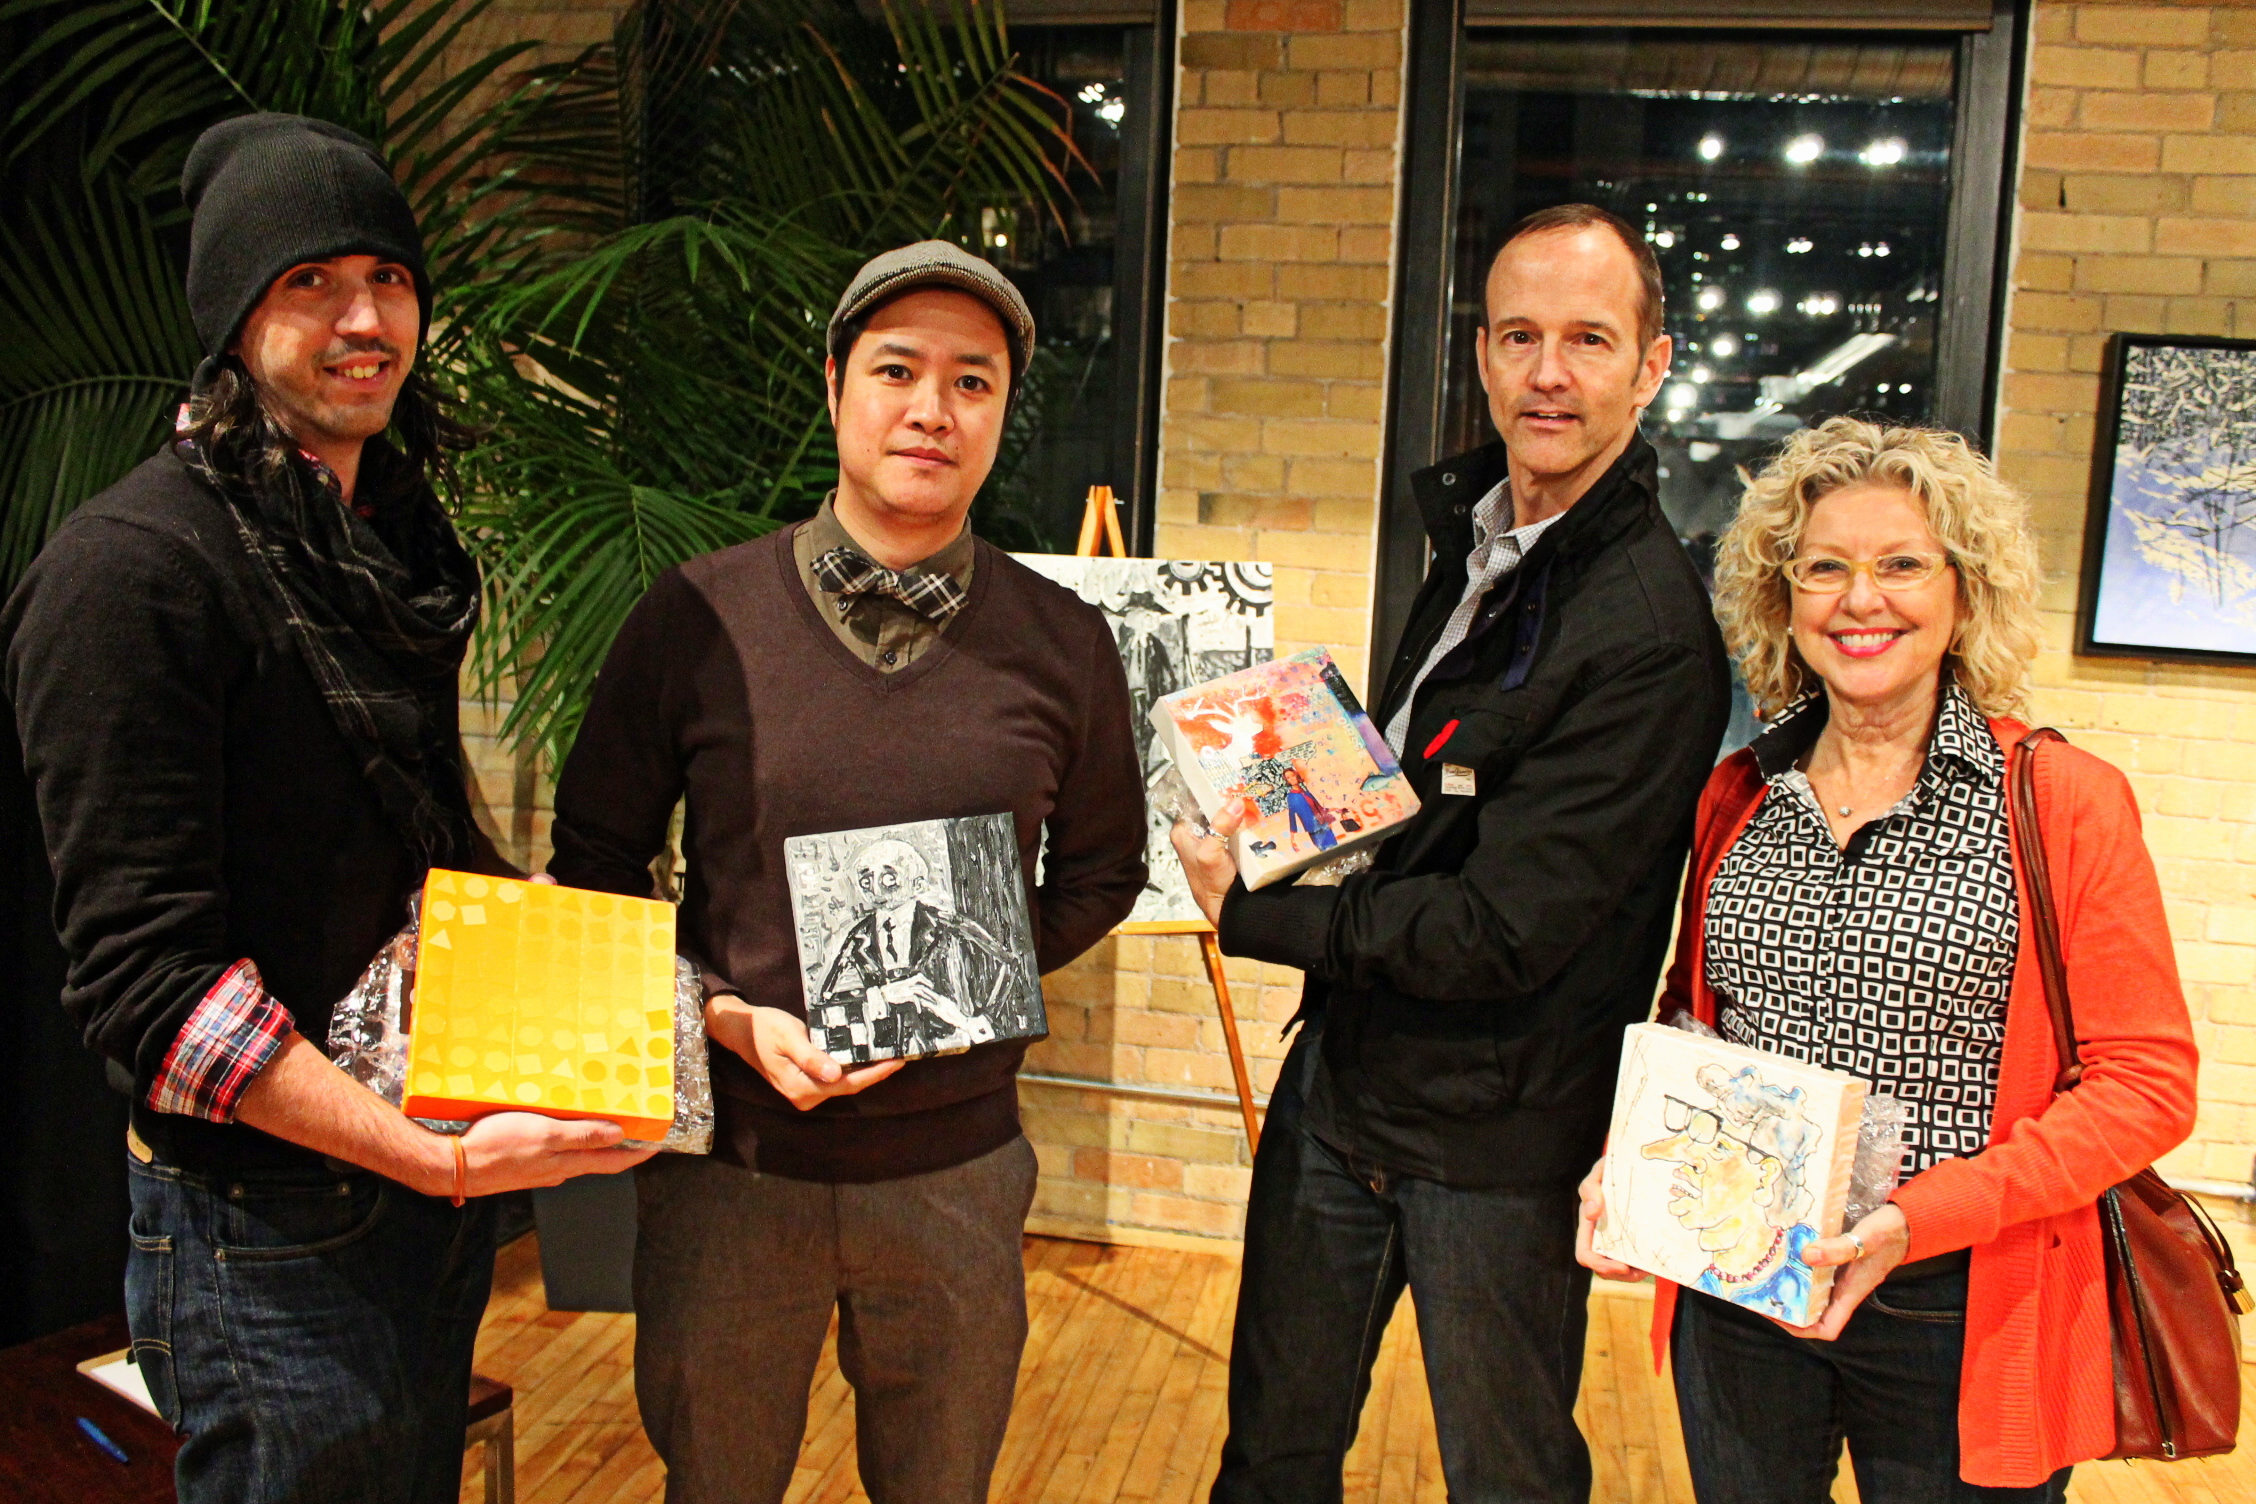 Art lovers at The Spoke Club with their original artworks from Artomb